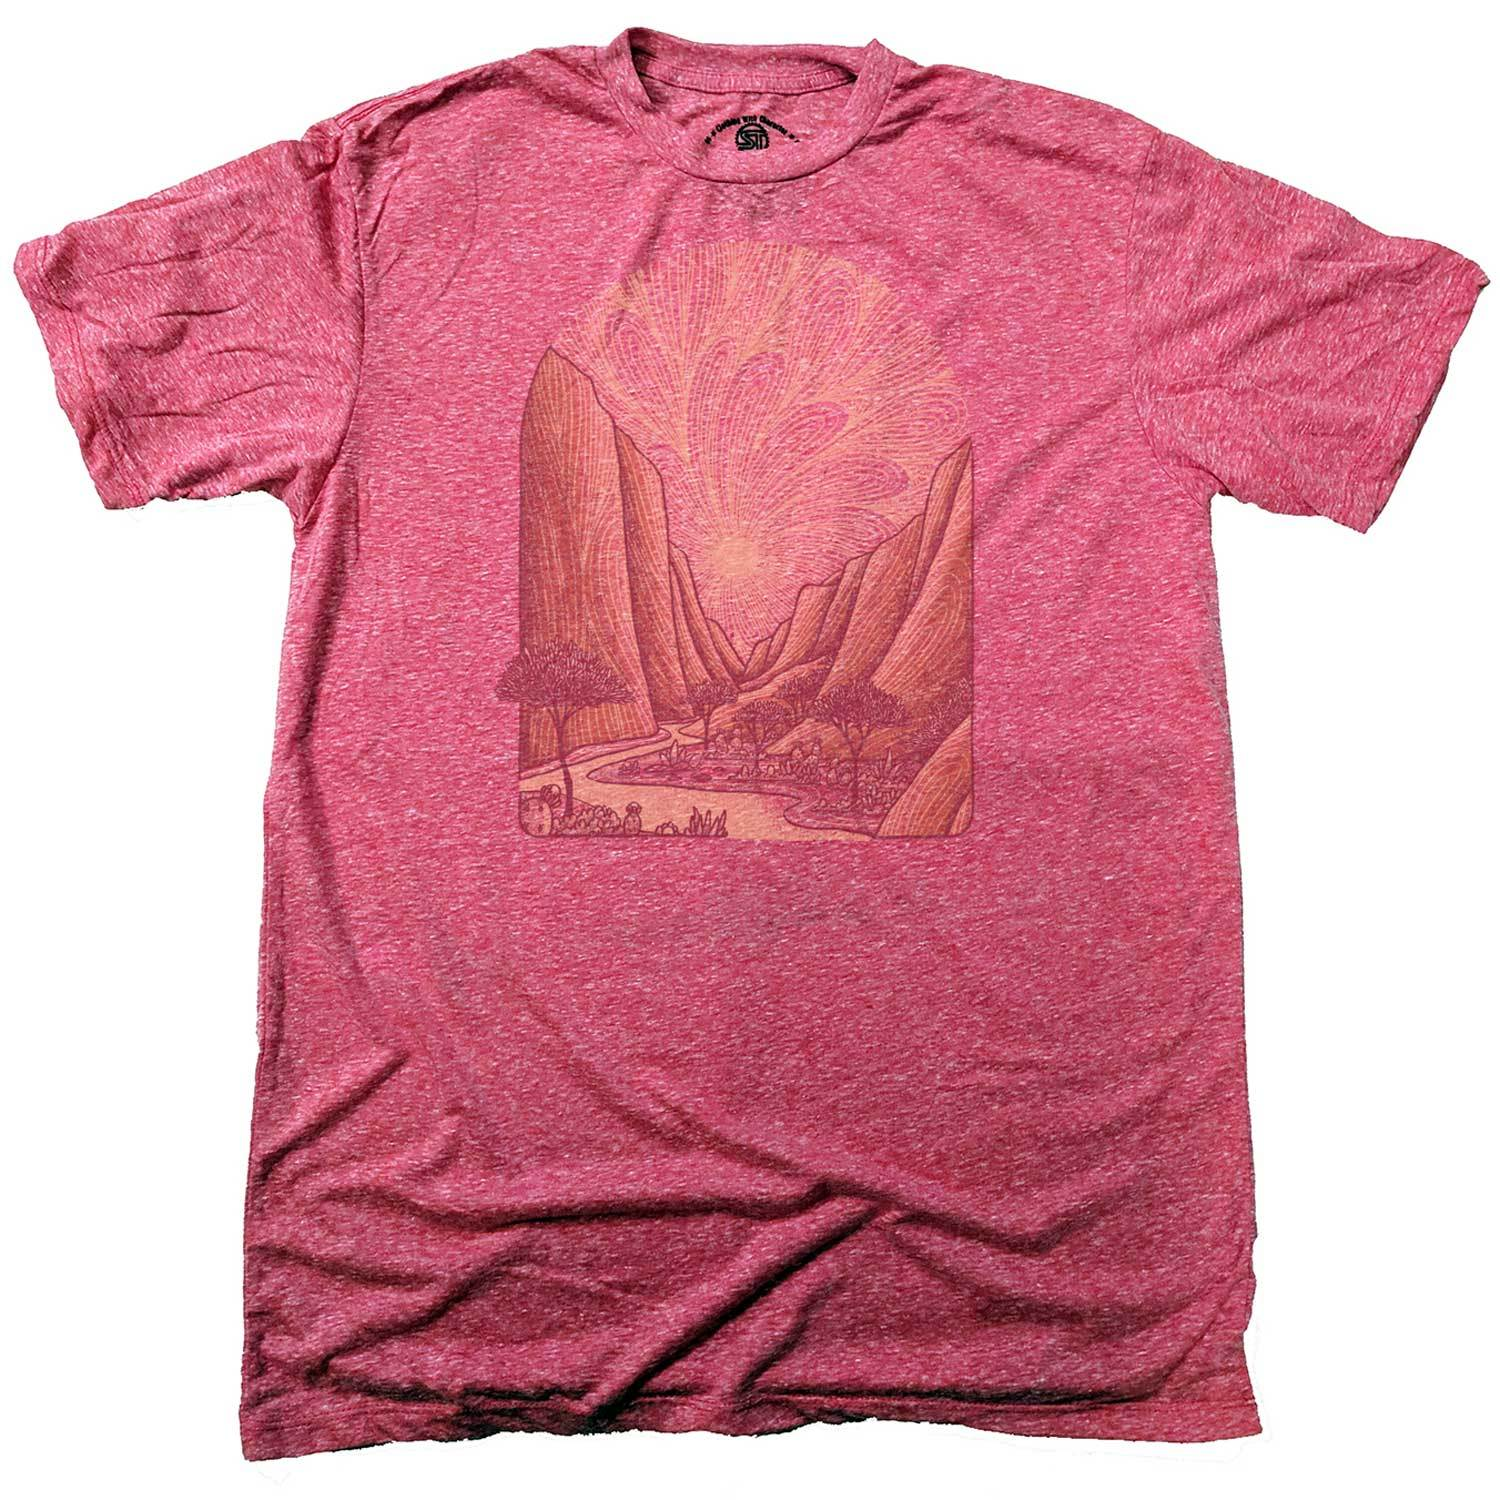 Men's Zion Vintage Inspired T-Shirt | Retro National Park Graphic Tee | Solid Threads